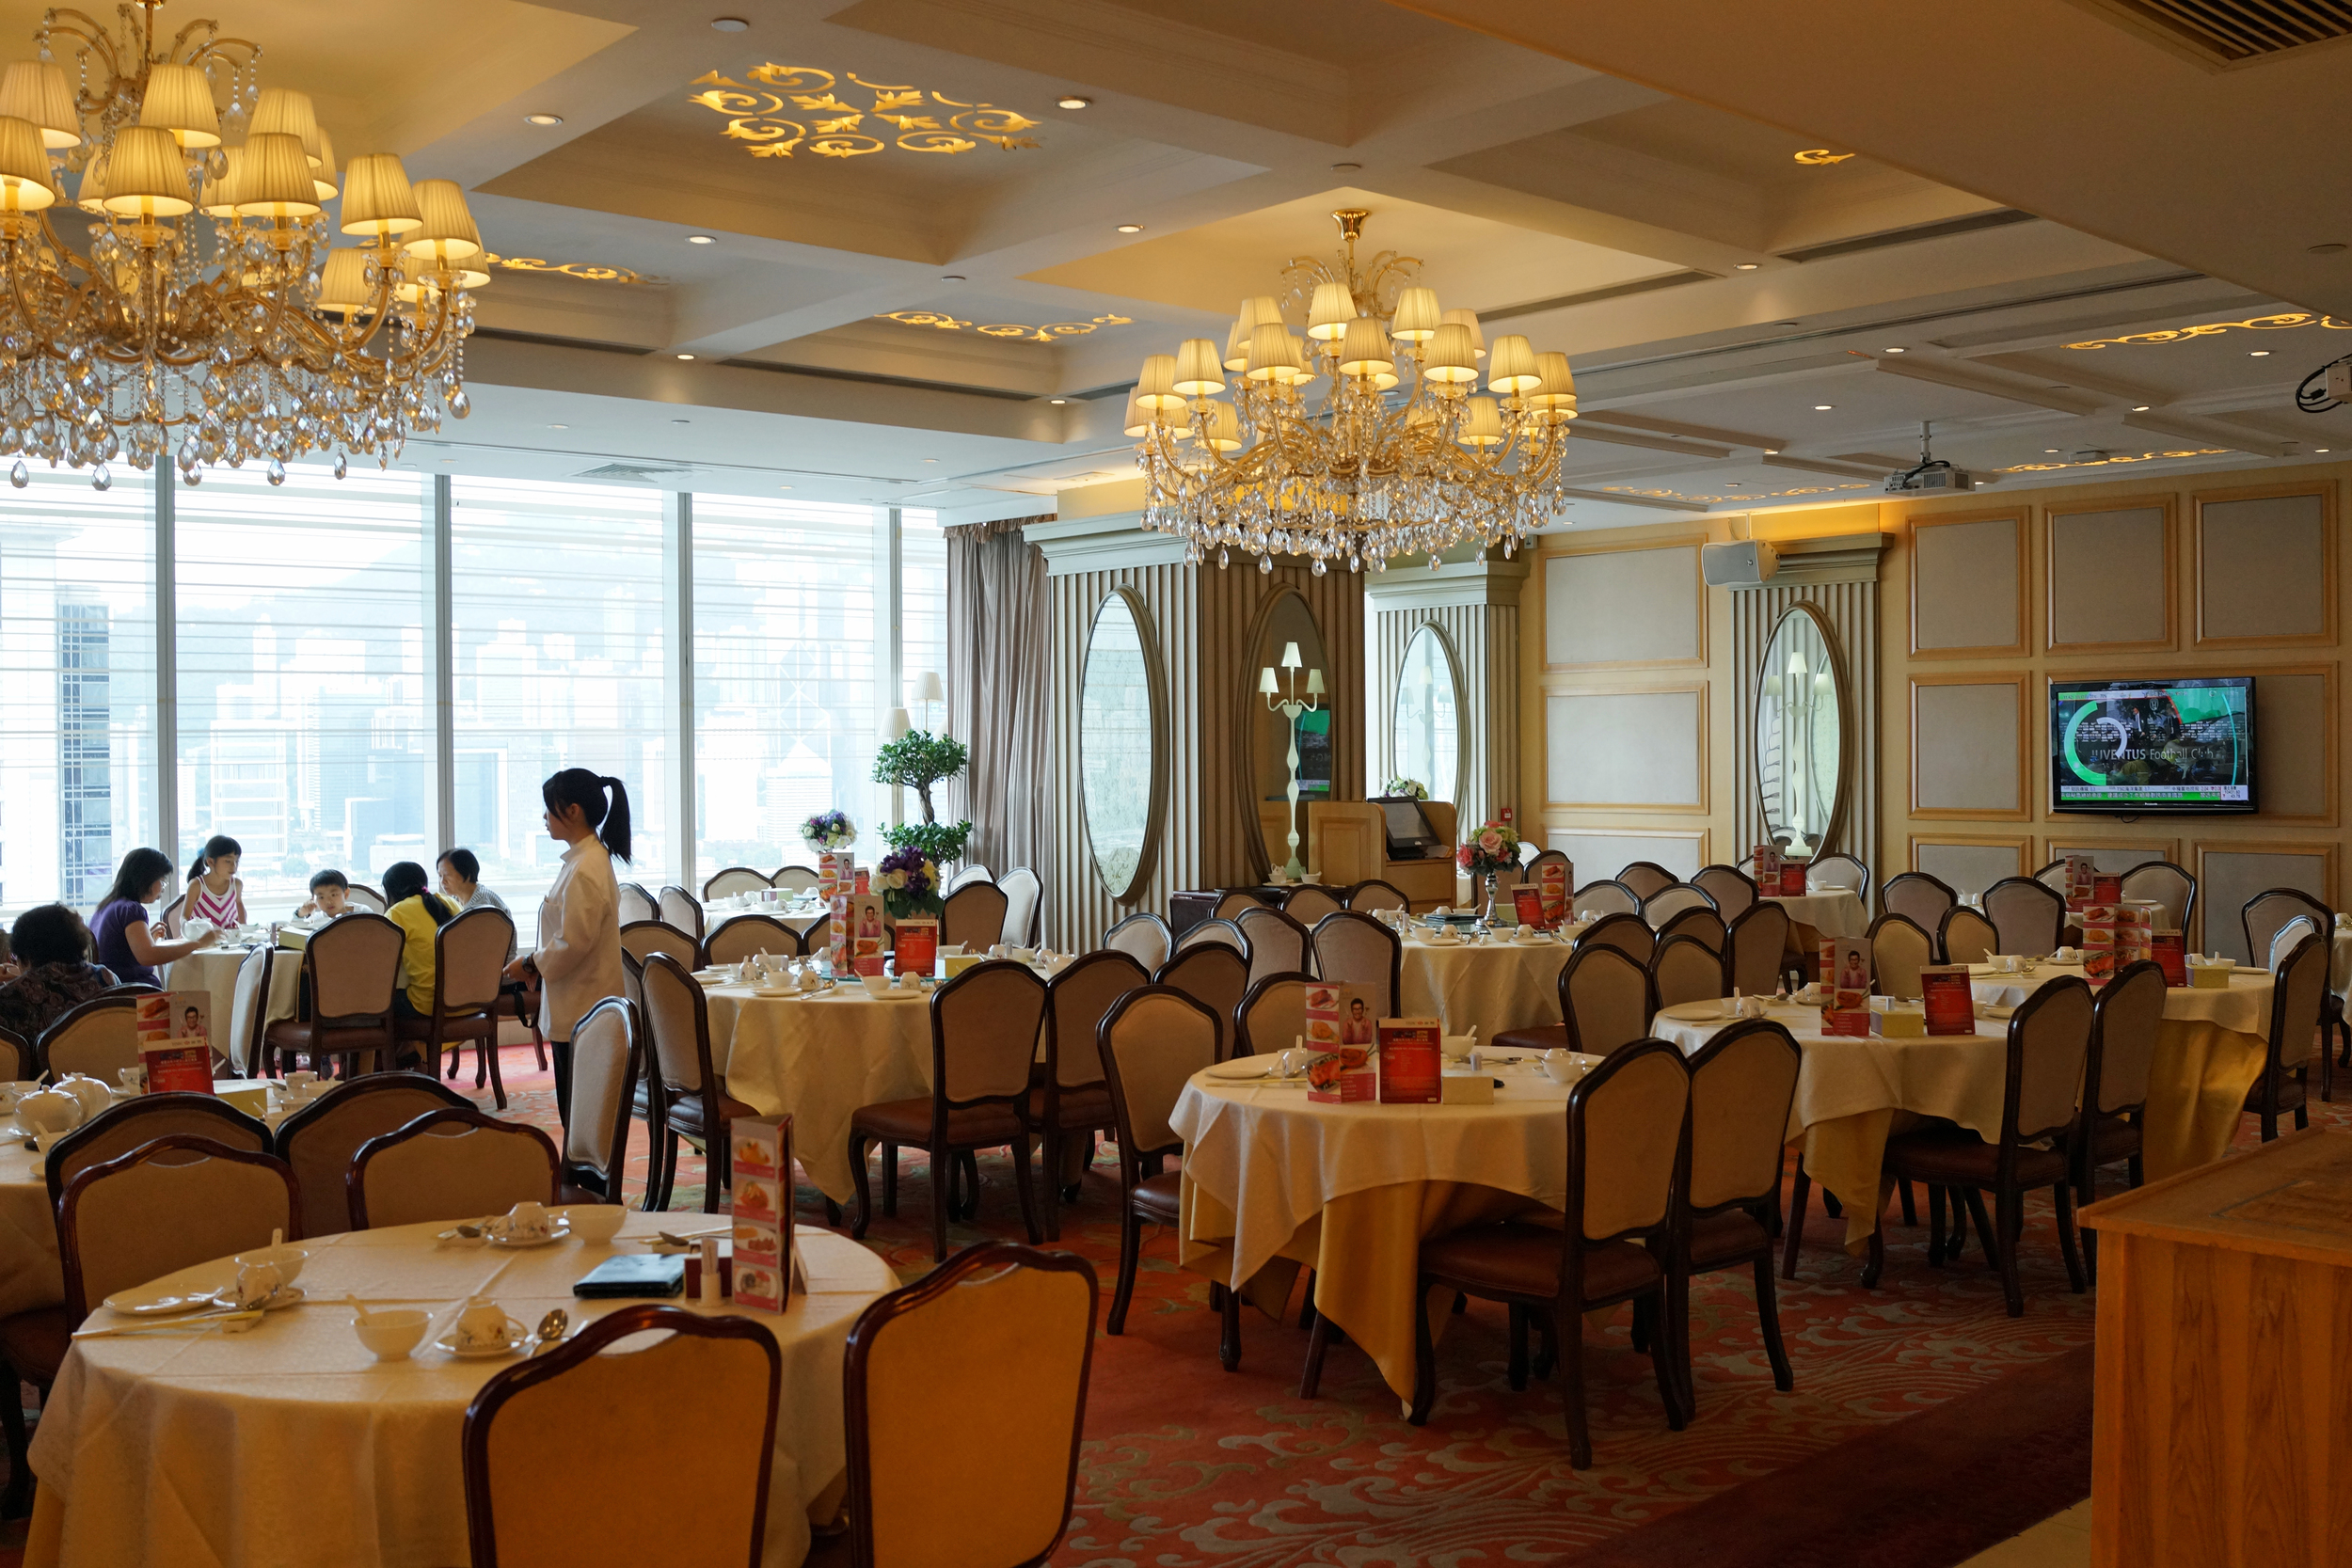 The Star of Canton Dim Sum Restaurant is a great Dim Sum place and handily located on the 24th Floor of I Square a shopping mall that sits on top of TST MTR Station in Kowloon... it is rather splendid and has some nice views as well.